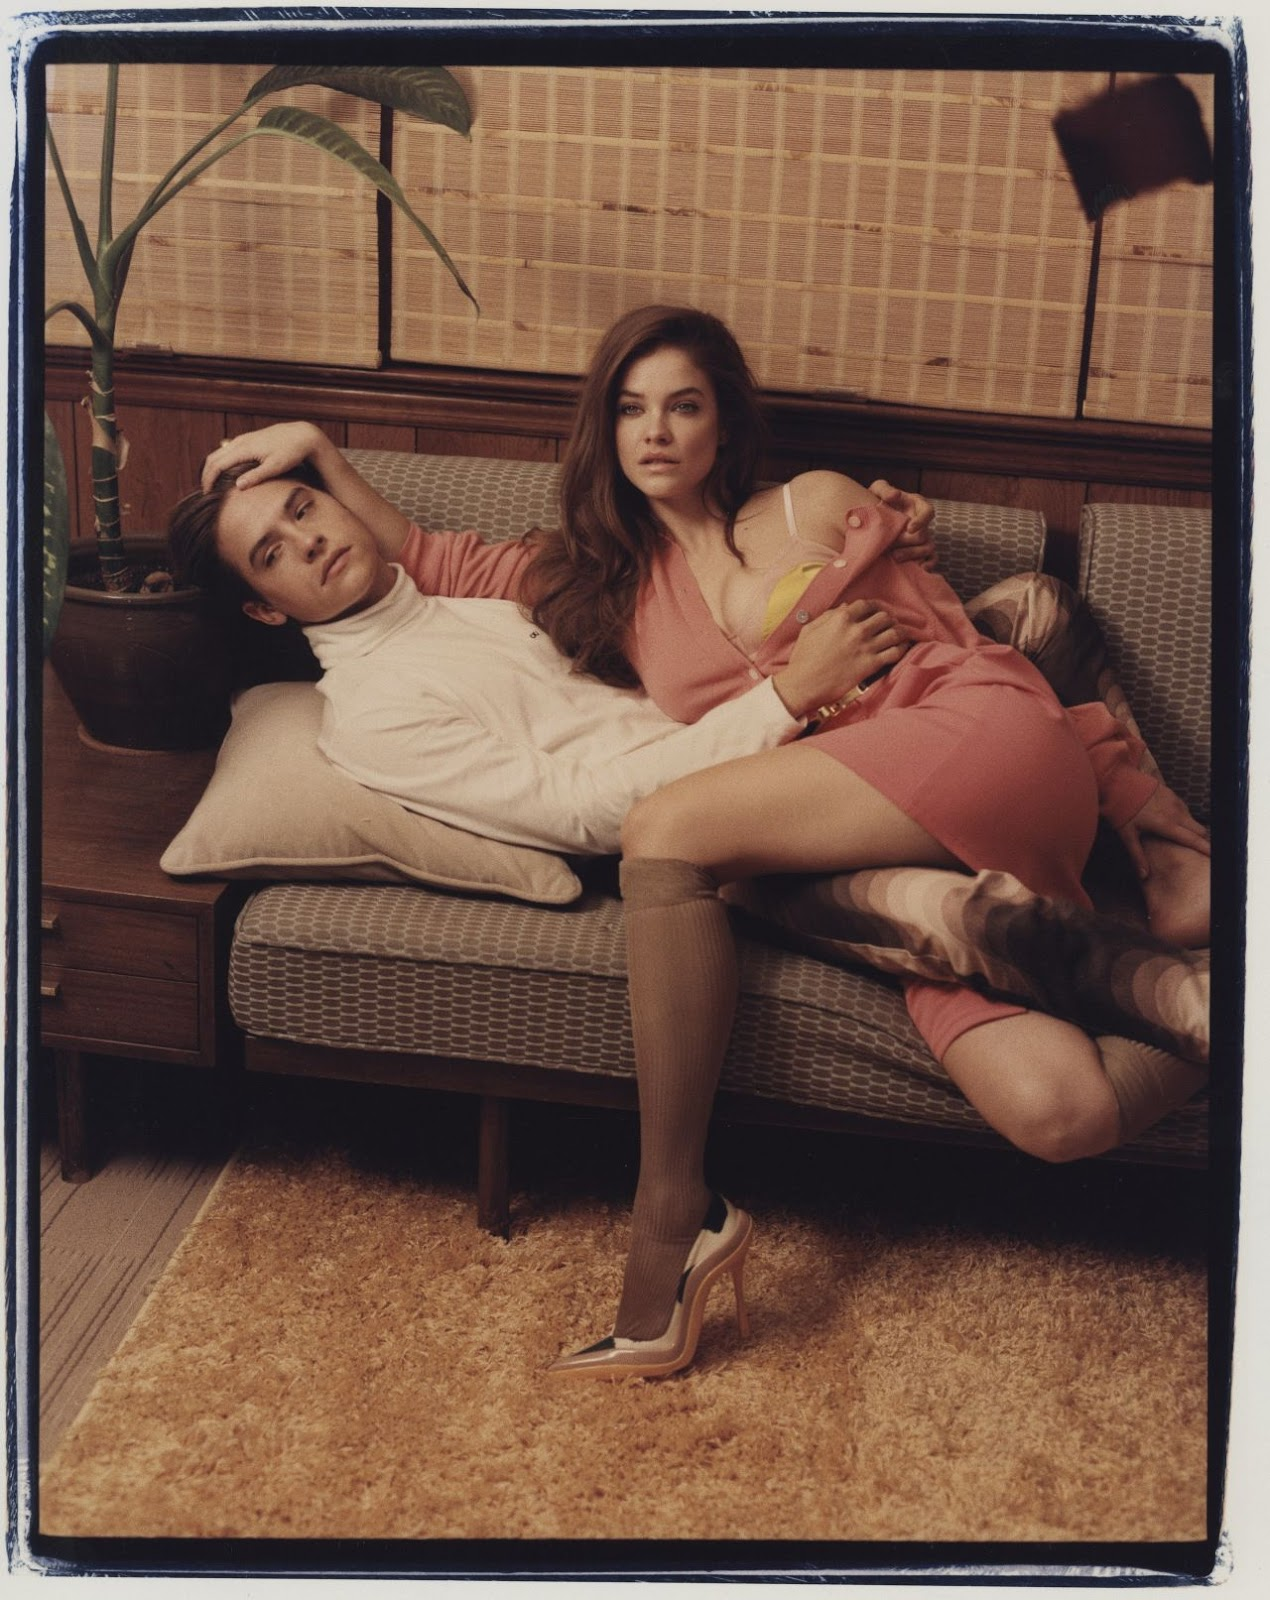 Barbara Palvin and Dylan Sprouse – Photoshoot for W Magazine, February 2019